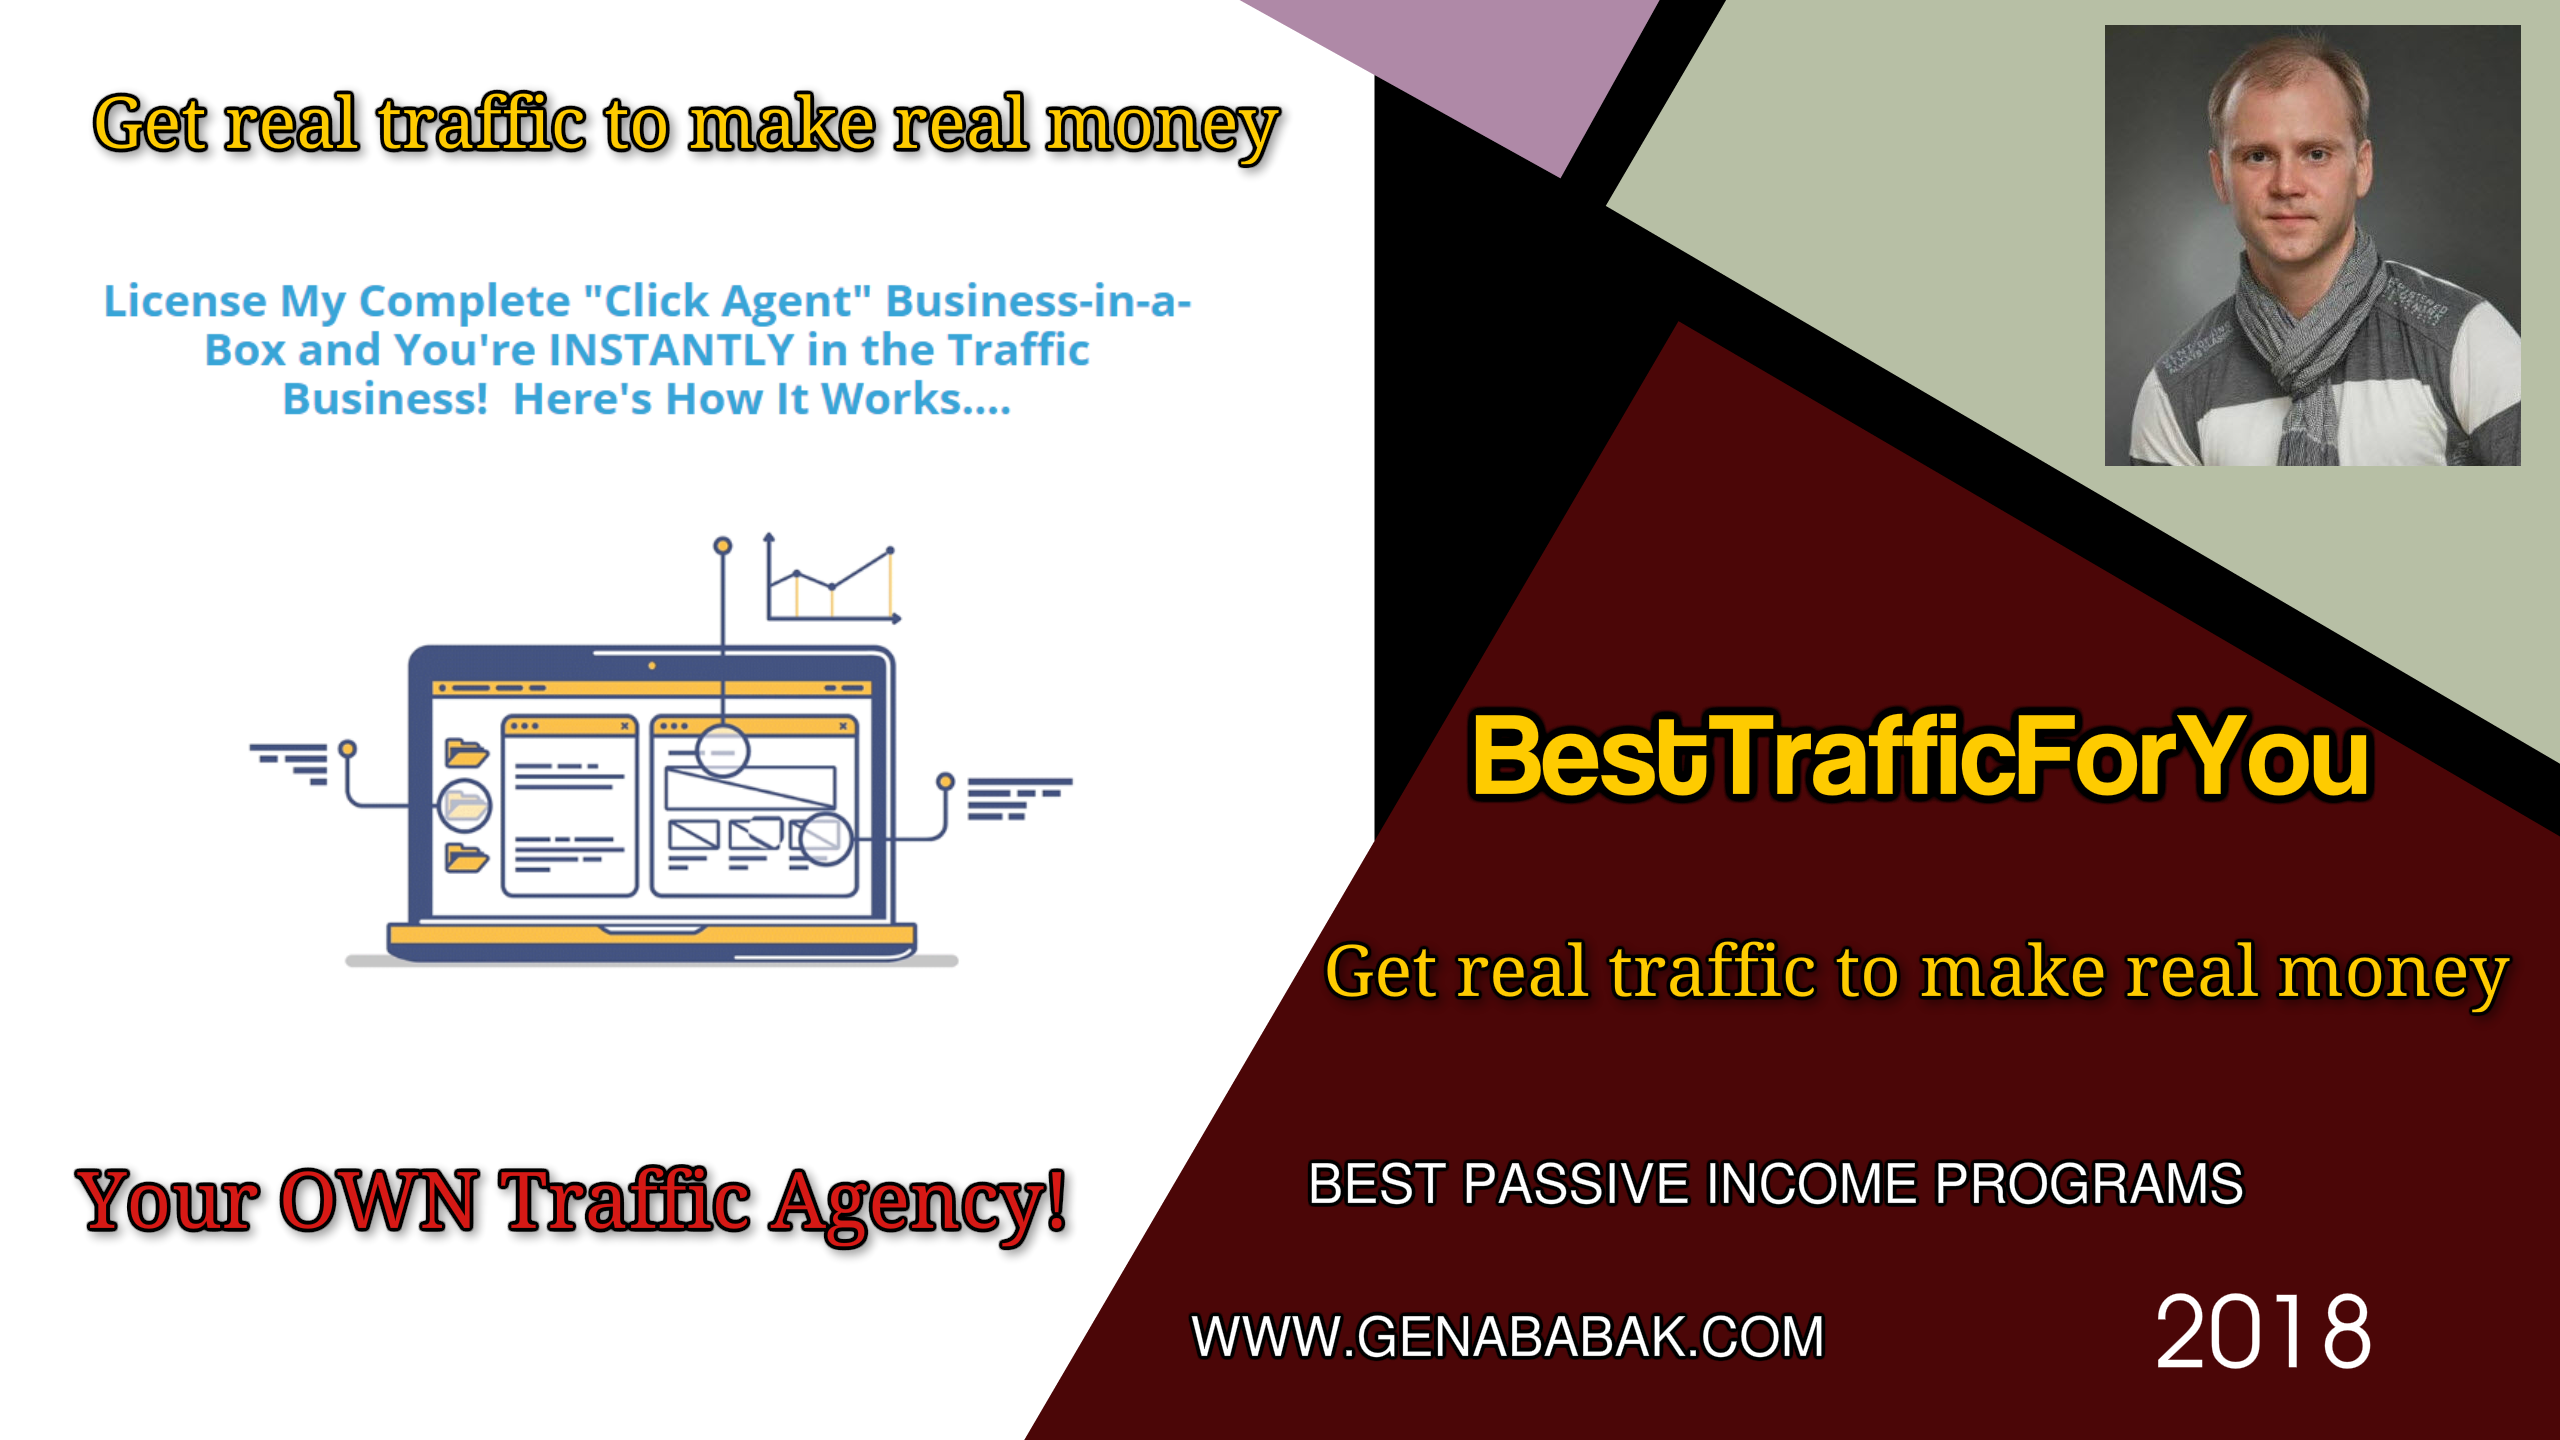 GET YOUR OWN TRAFFIC AGENCY - CLICK AGENCY REVIEW BY GENA BABAK